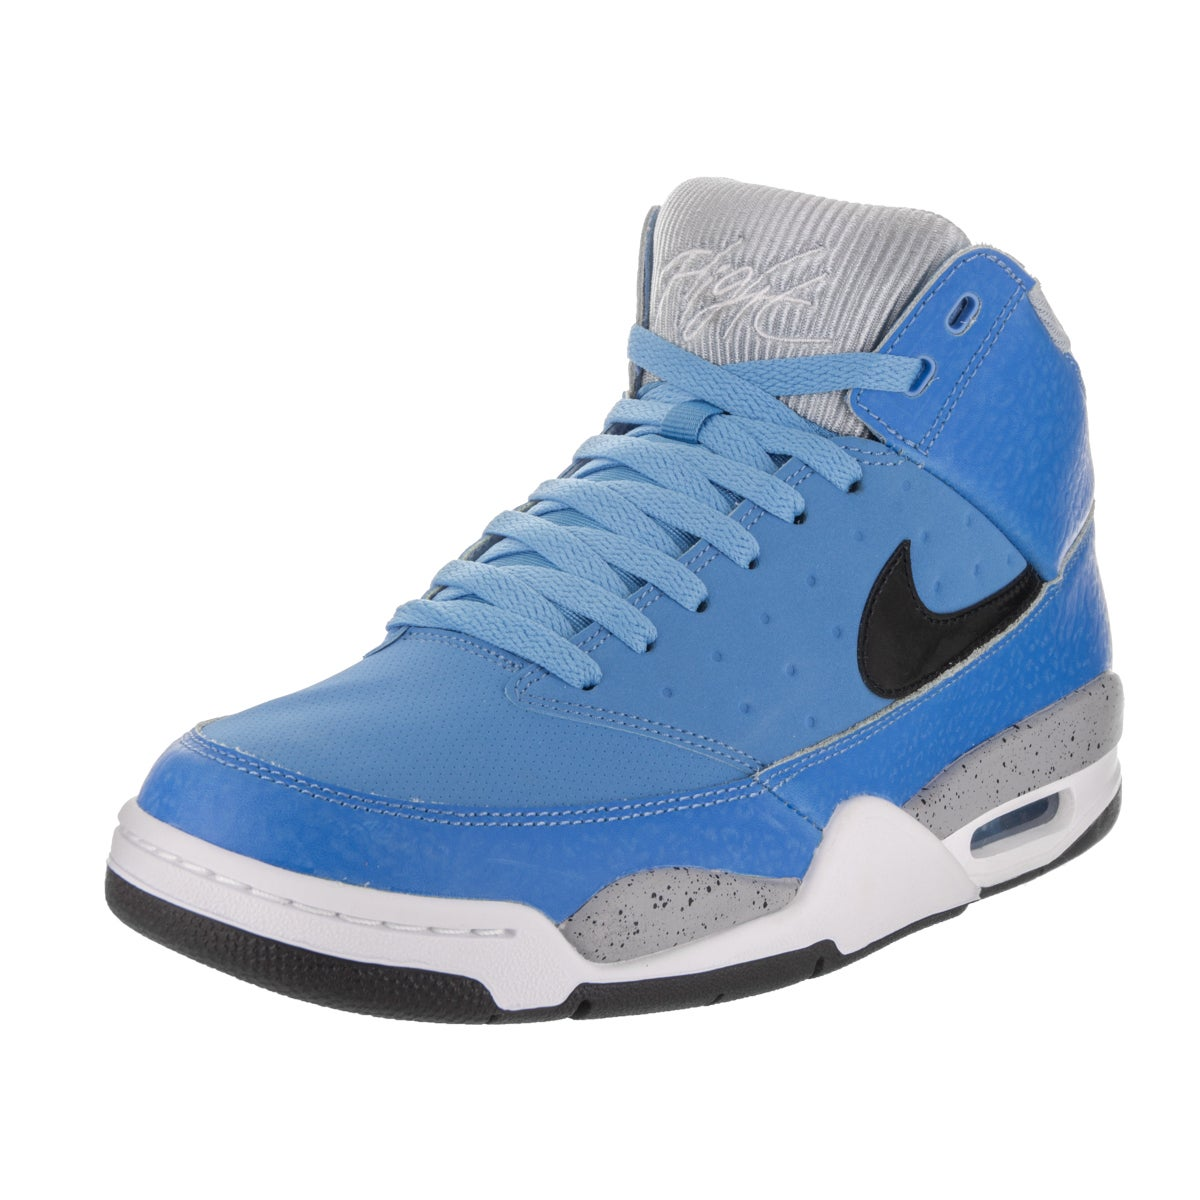 Nike Men's Air Flight Classic Blue Synthetic Leather Bask...